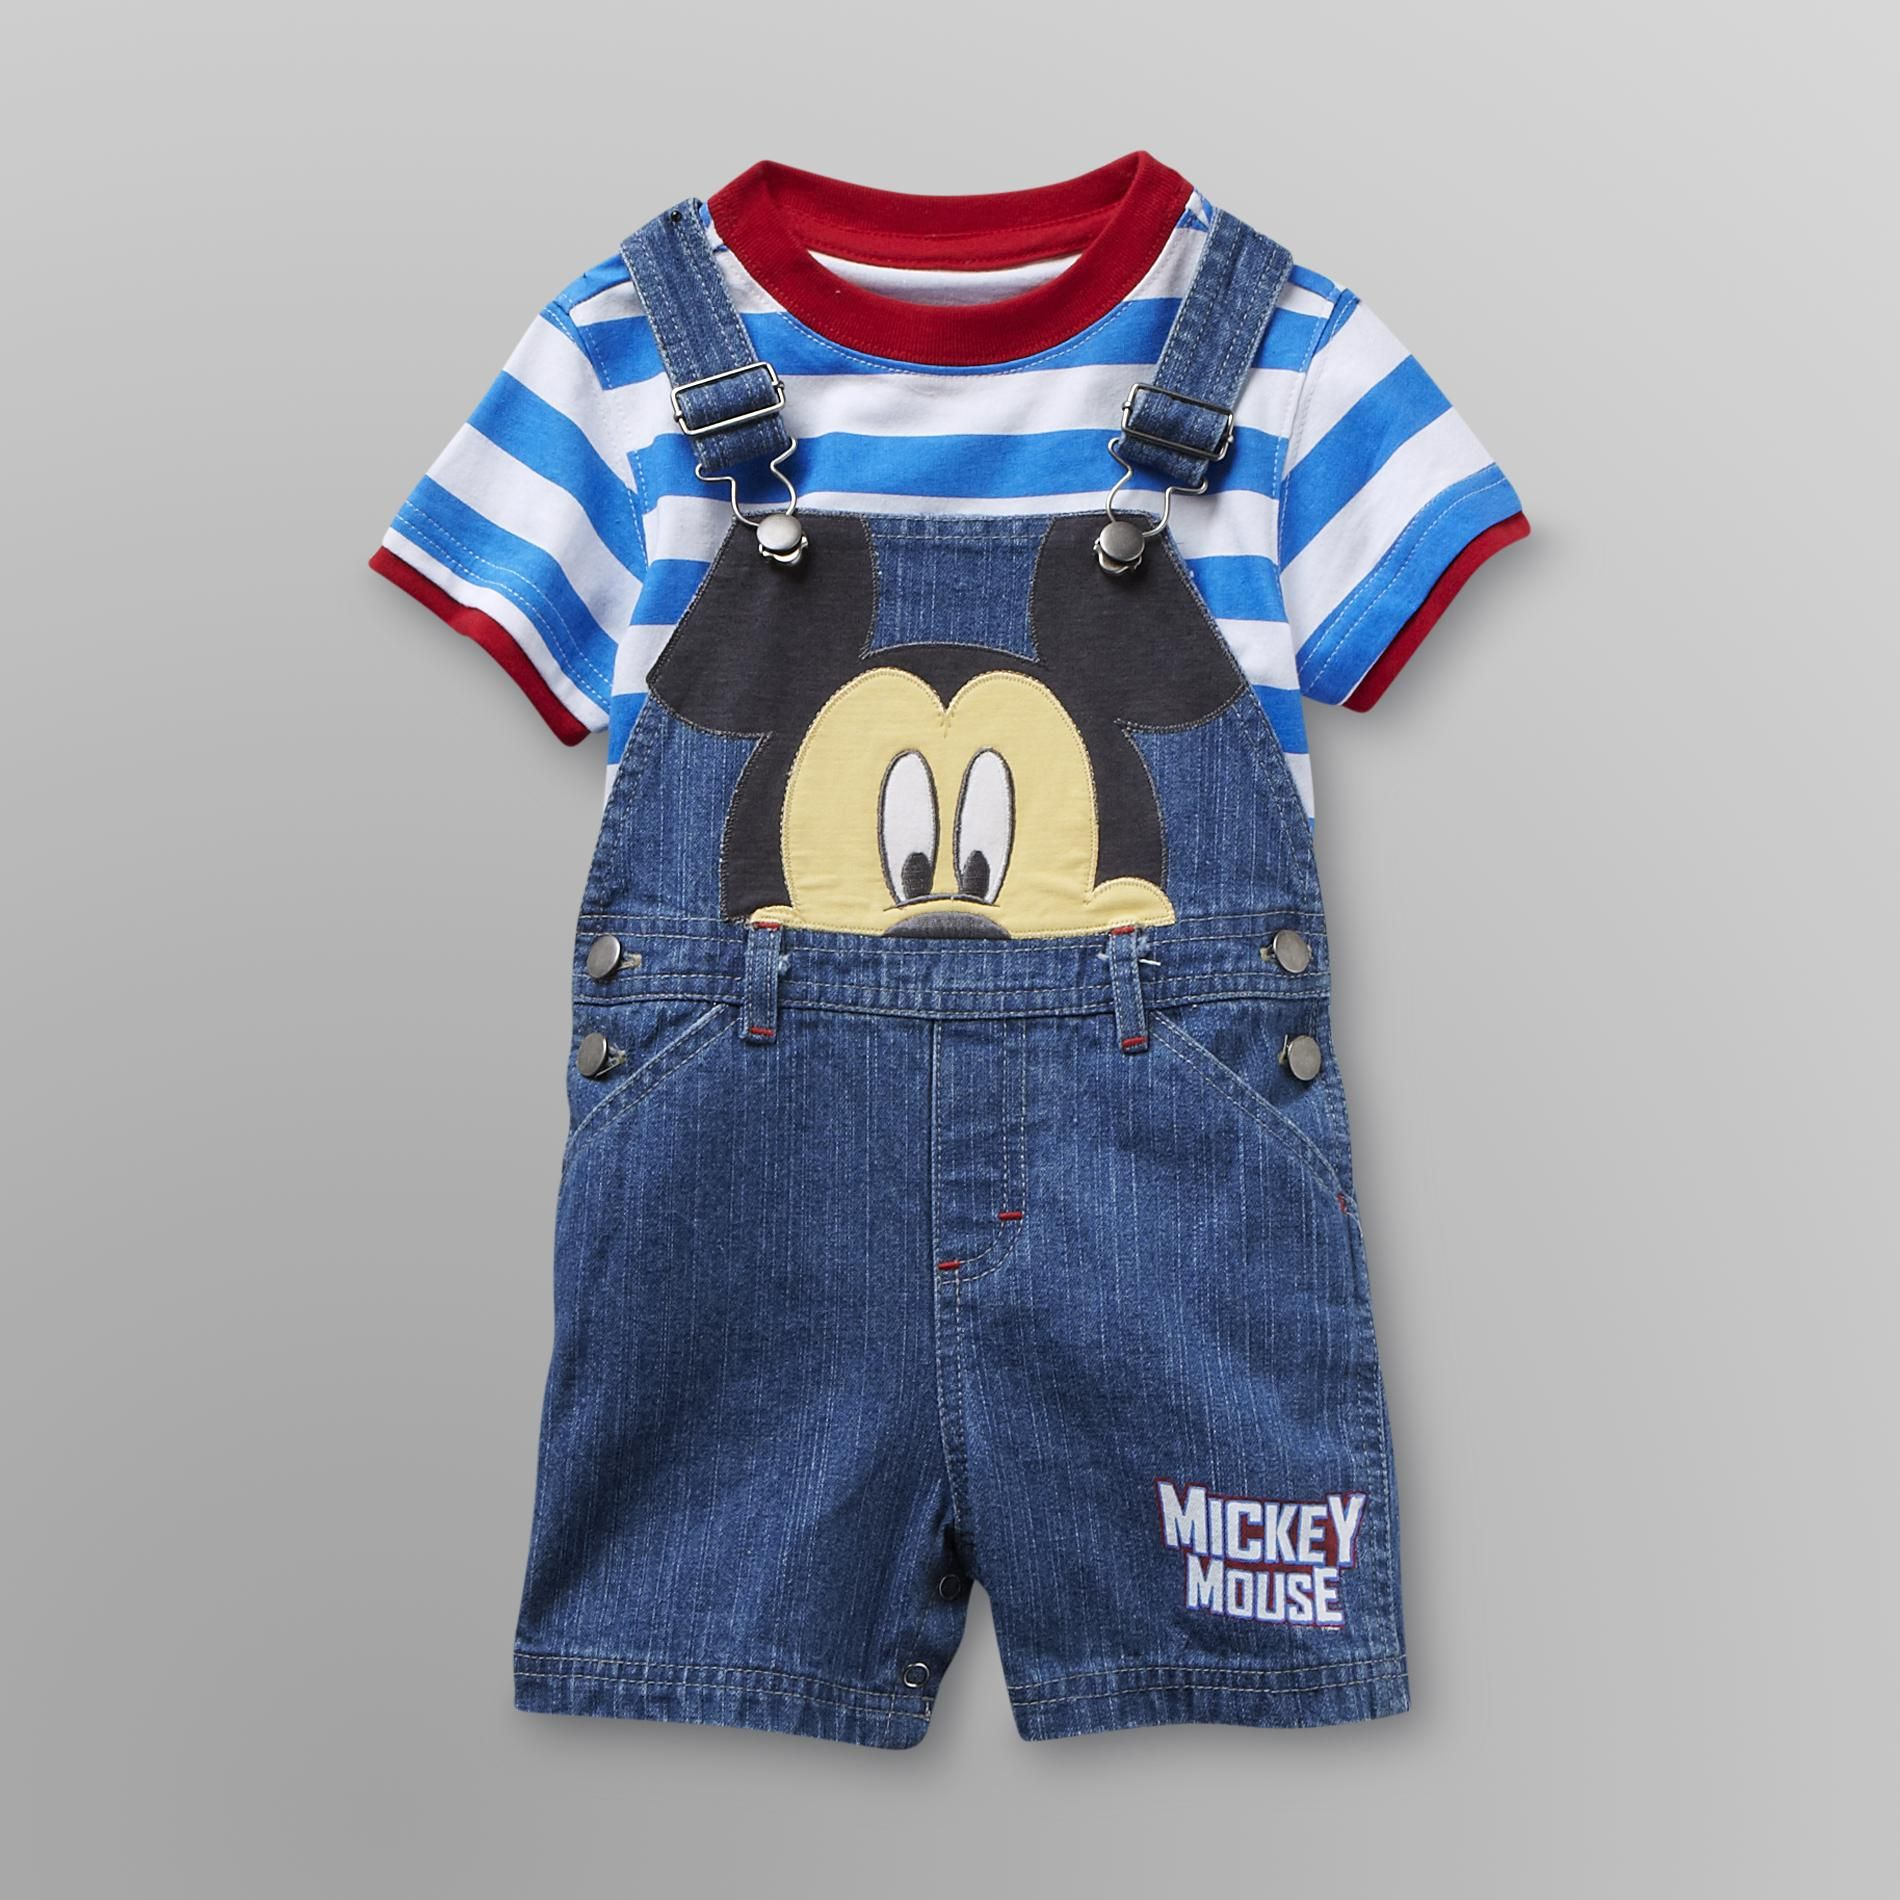 Disney Baby Mickey Mouse Infant Boy's Overalls Shorts Set - Disney Baby